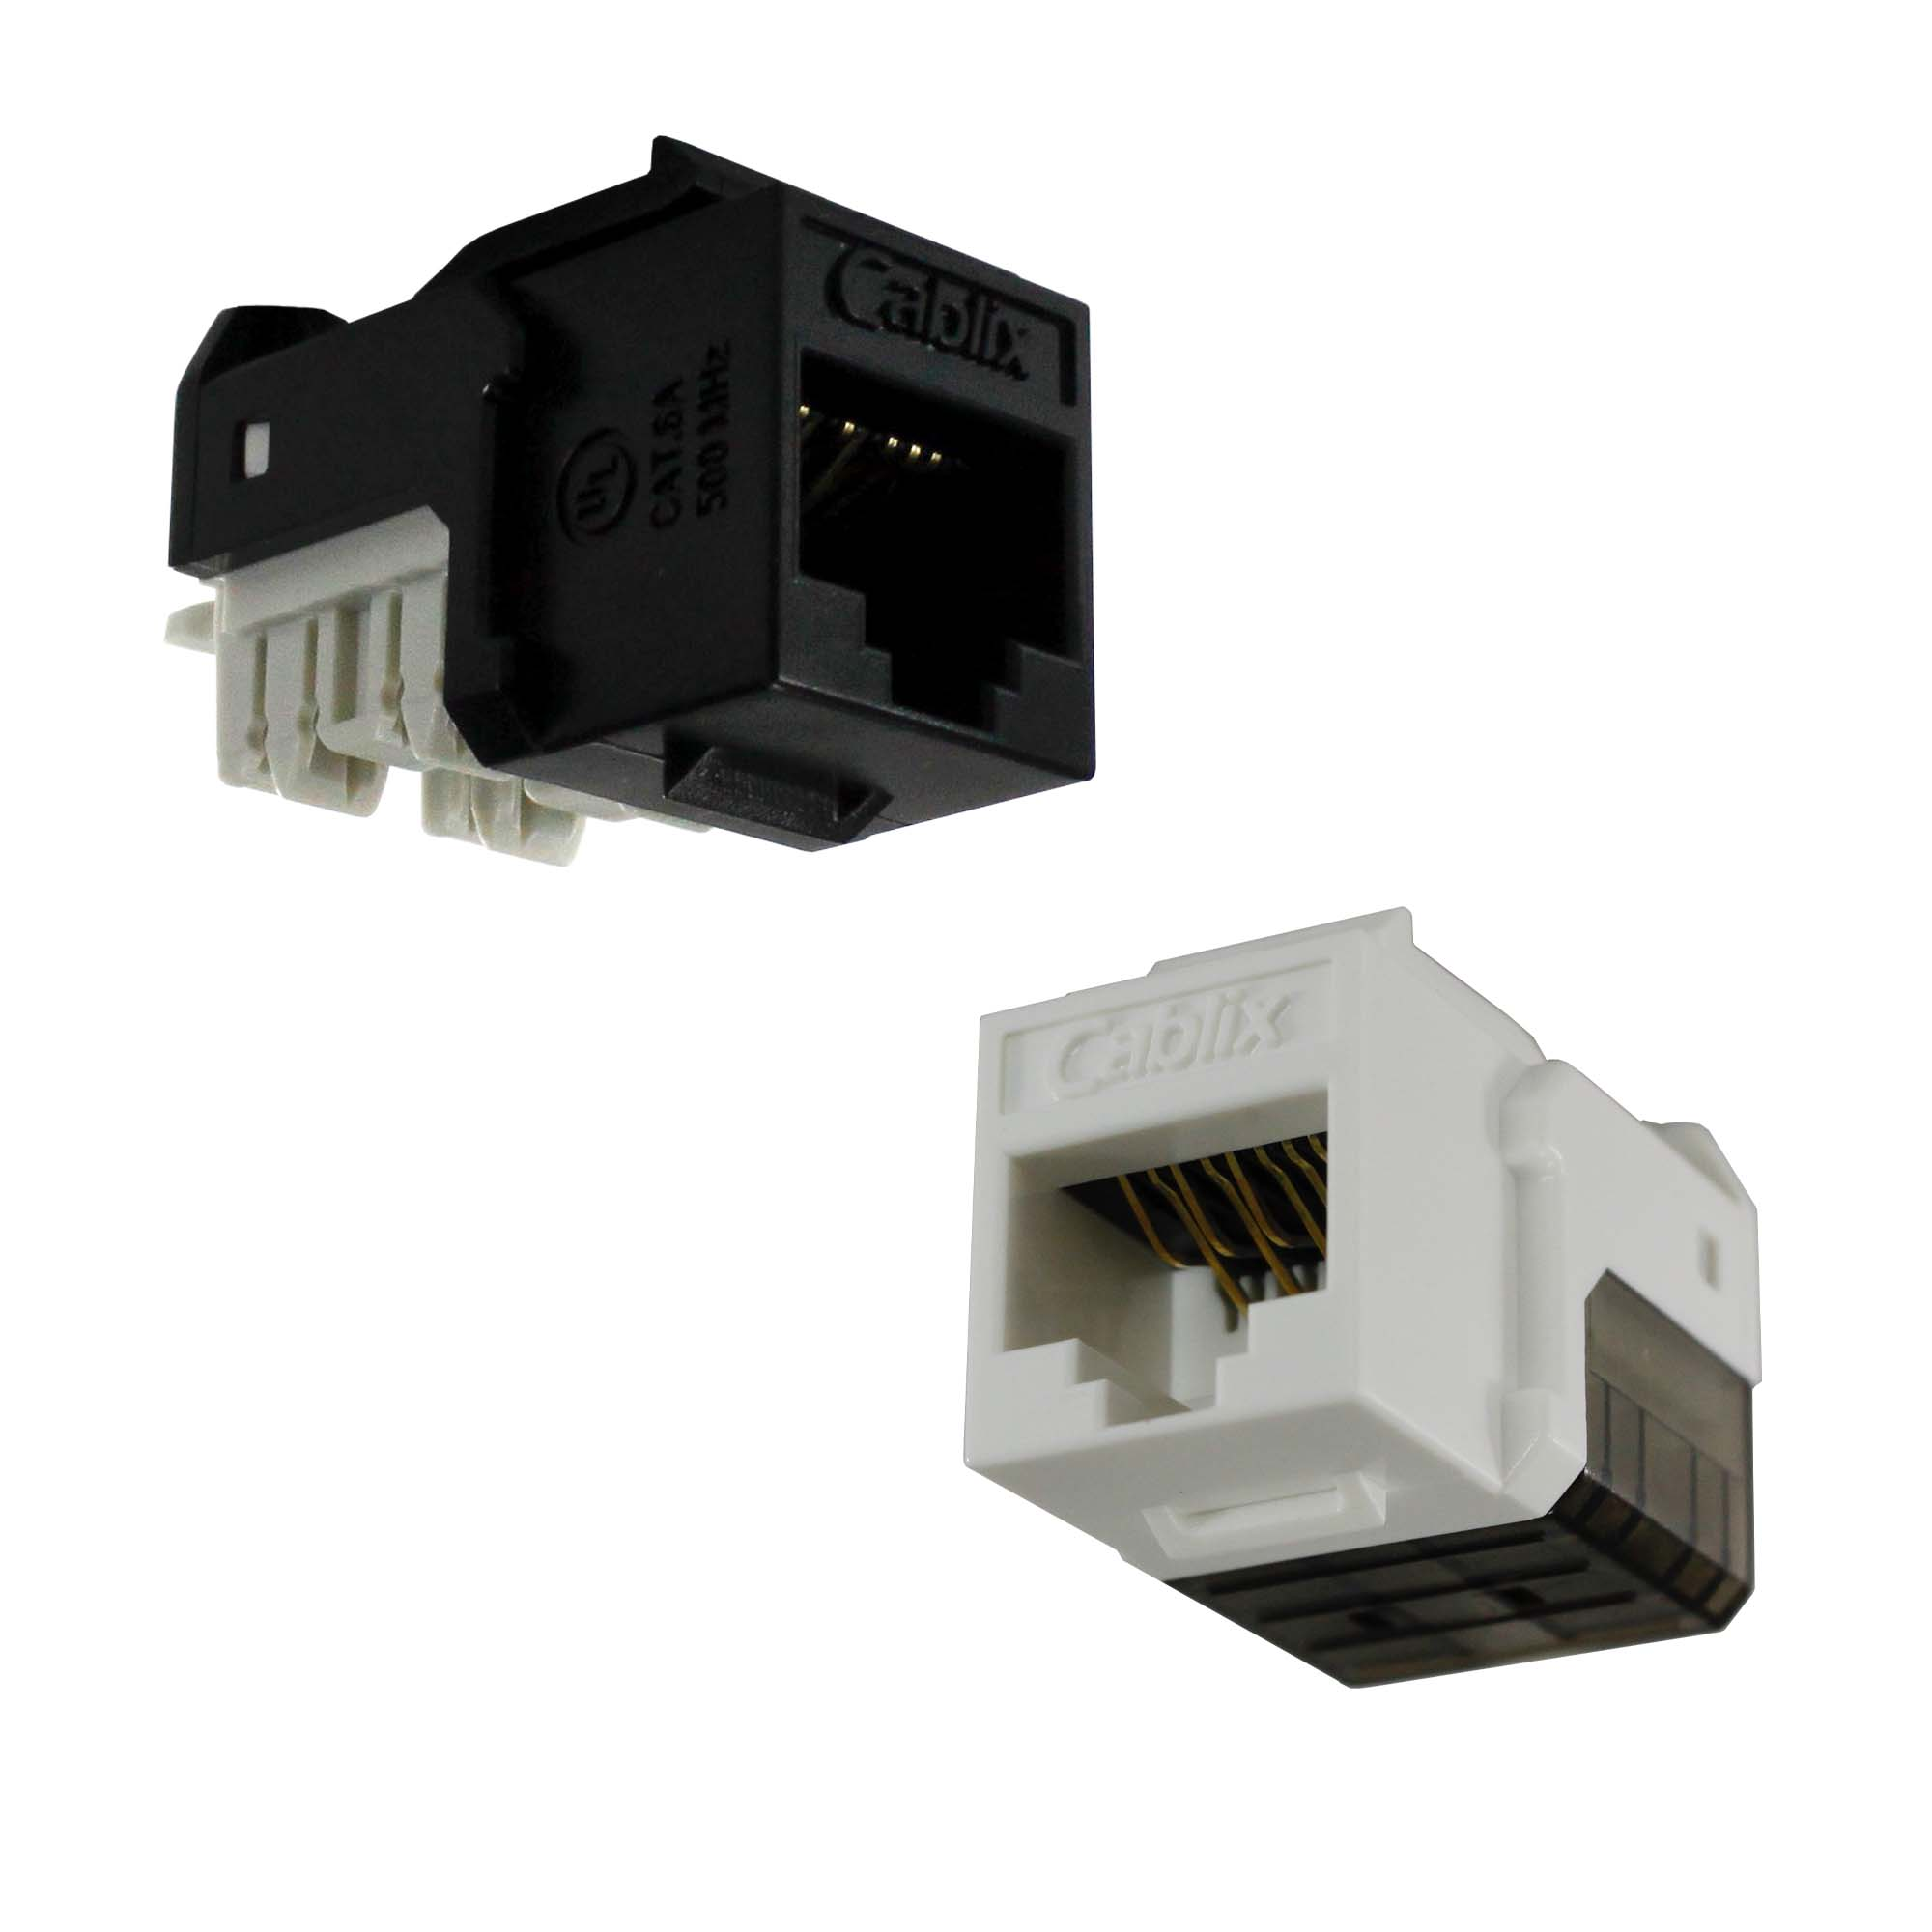 hight resolution of mk6a 03 cat 6a keystone jack technical information t568a t568b wiring